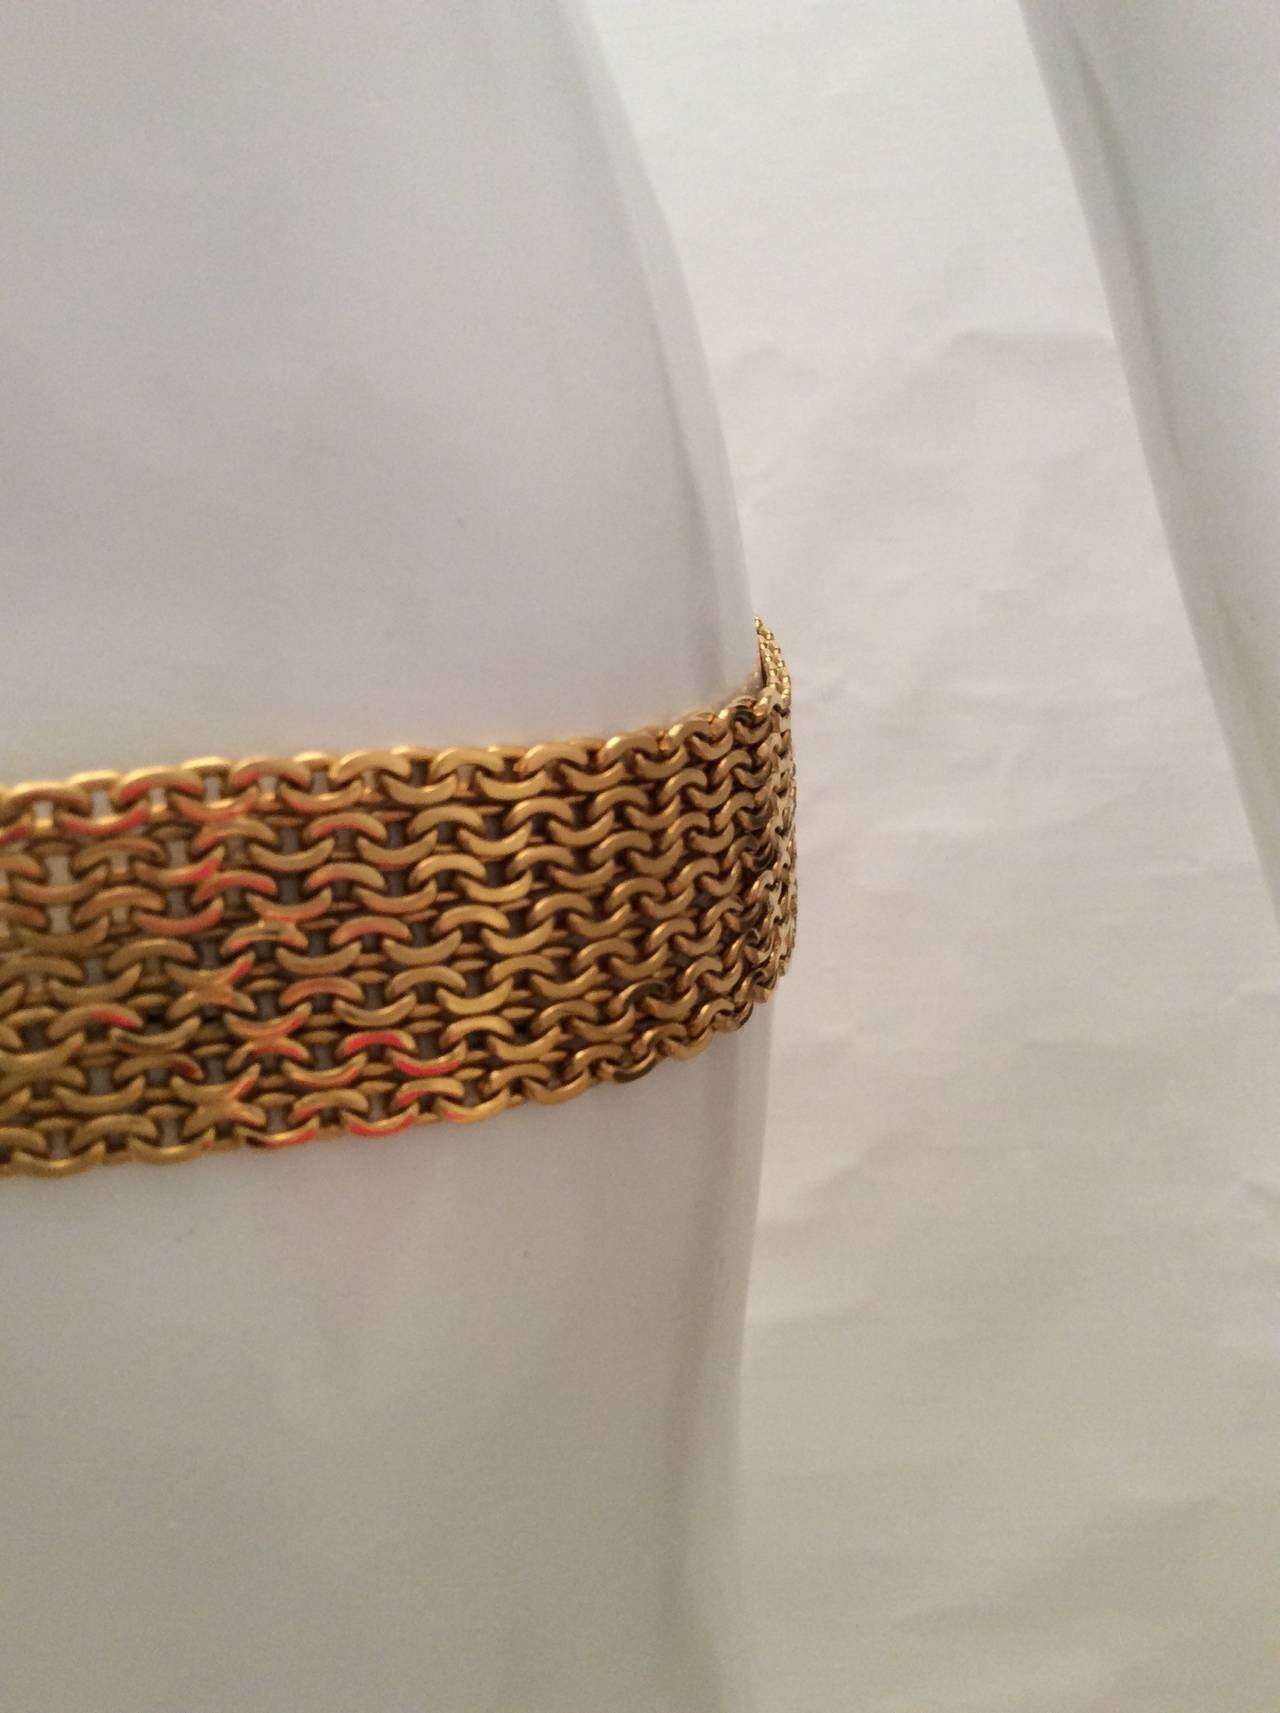 Vintage Gold Tone Magnificent Chain Belt In Excellent Condition For Sale In Boca Raton, FL